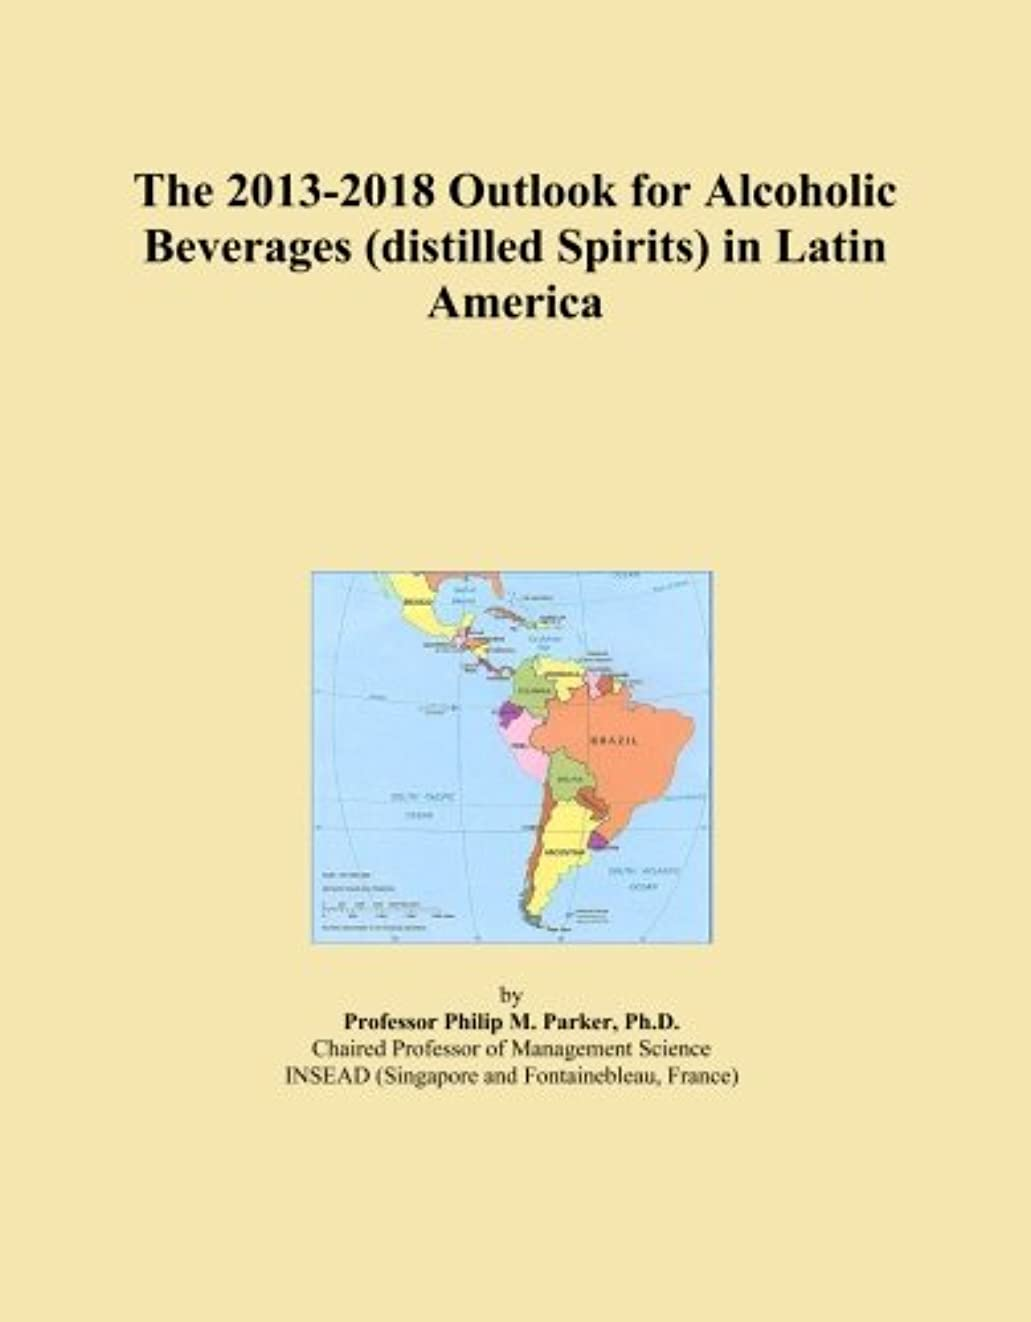 The 2013-2018 Outlook for Alcoholic Beverages (distilled Spirits) in Latin America